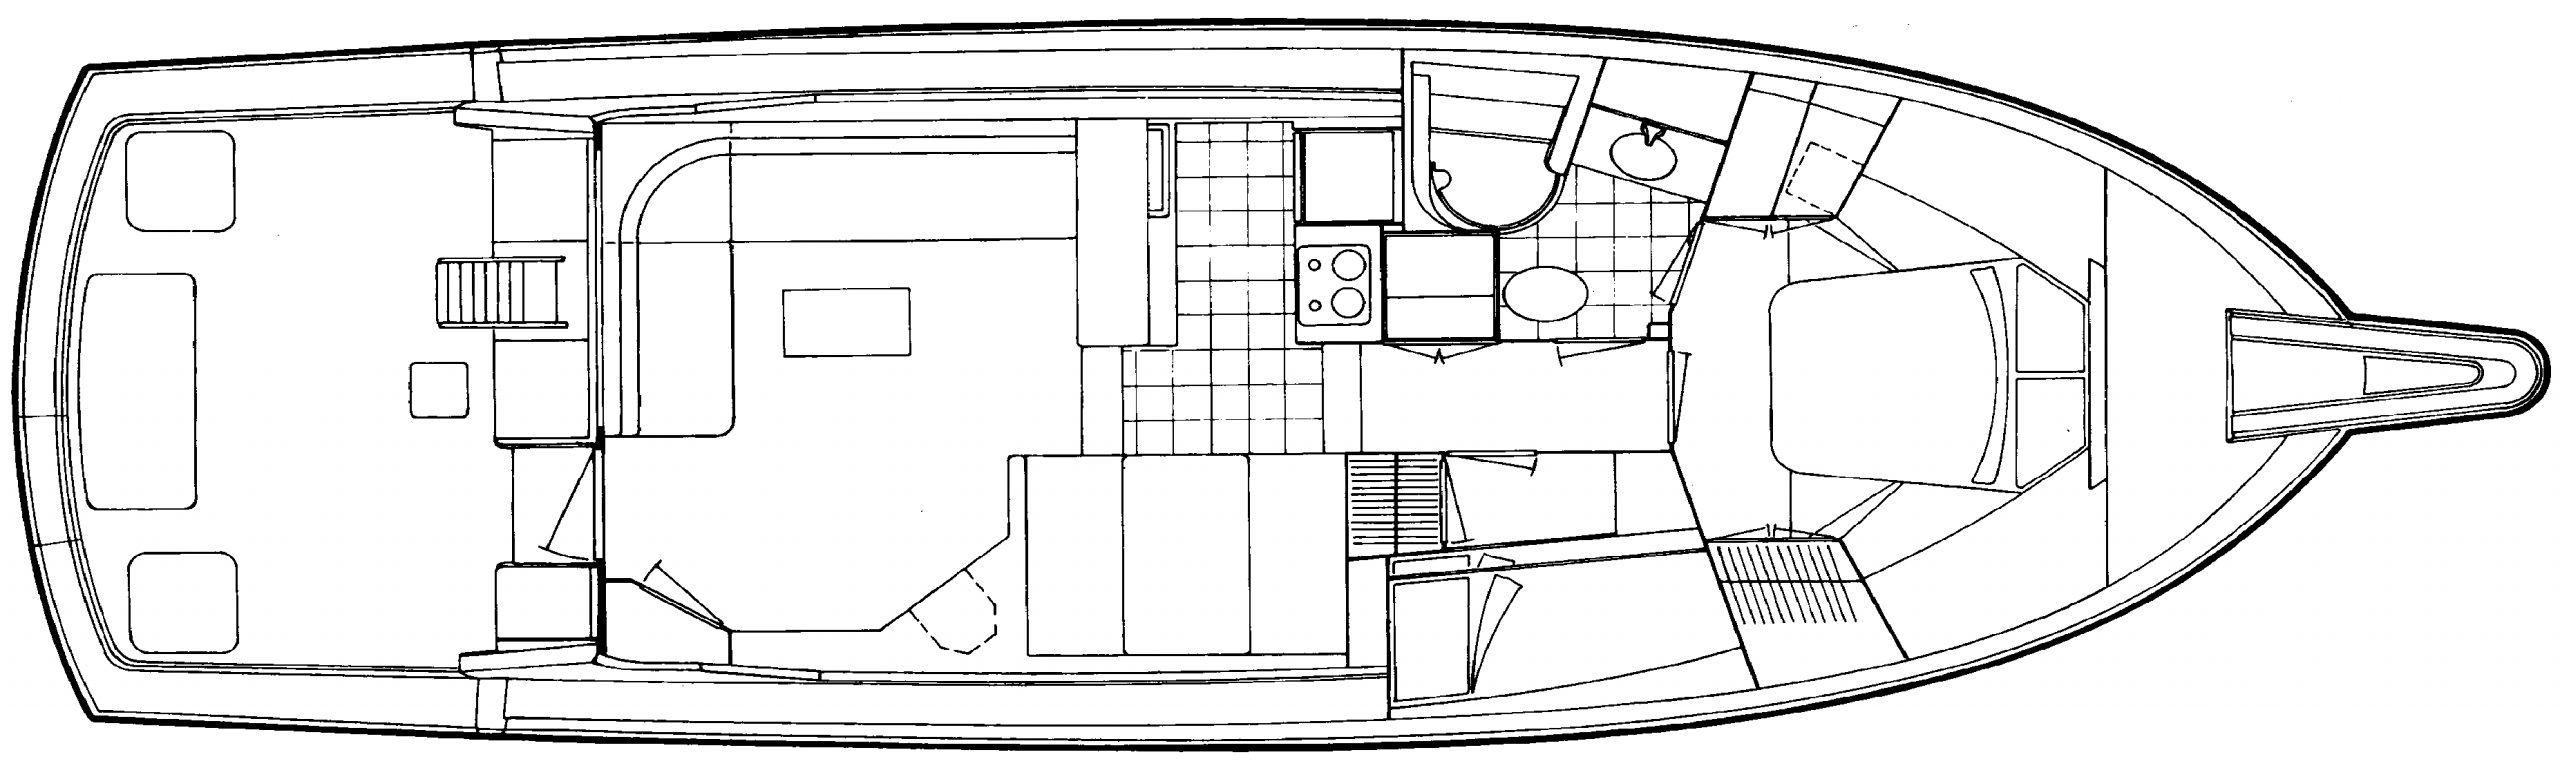 46 Convertible Floor Plan 2